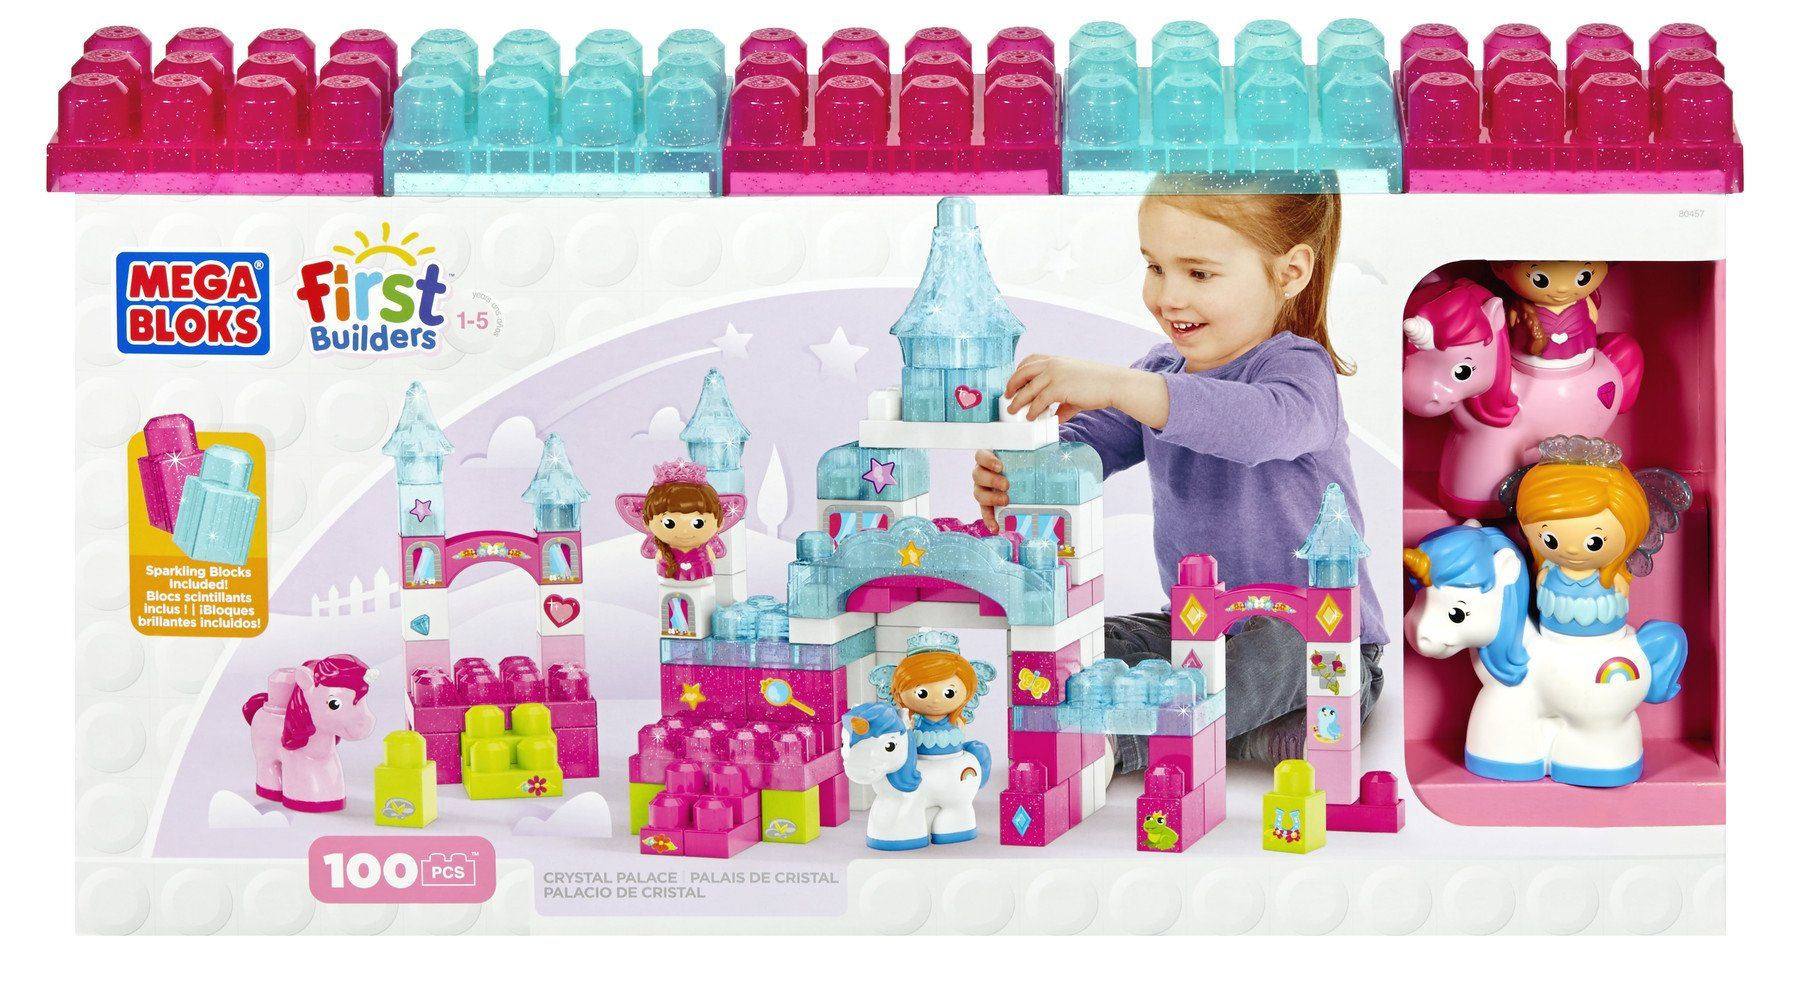 Mega Bloks First Builders Crystal Palace | Crystal castle, Toddler play, Cool toys